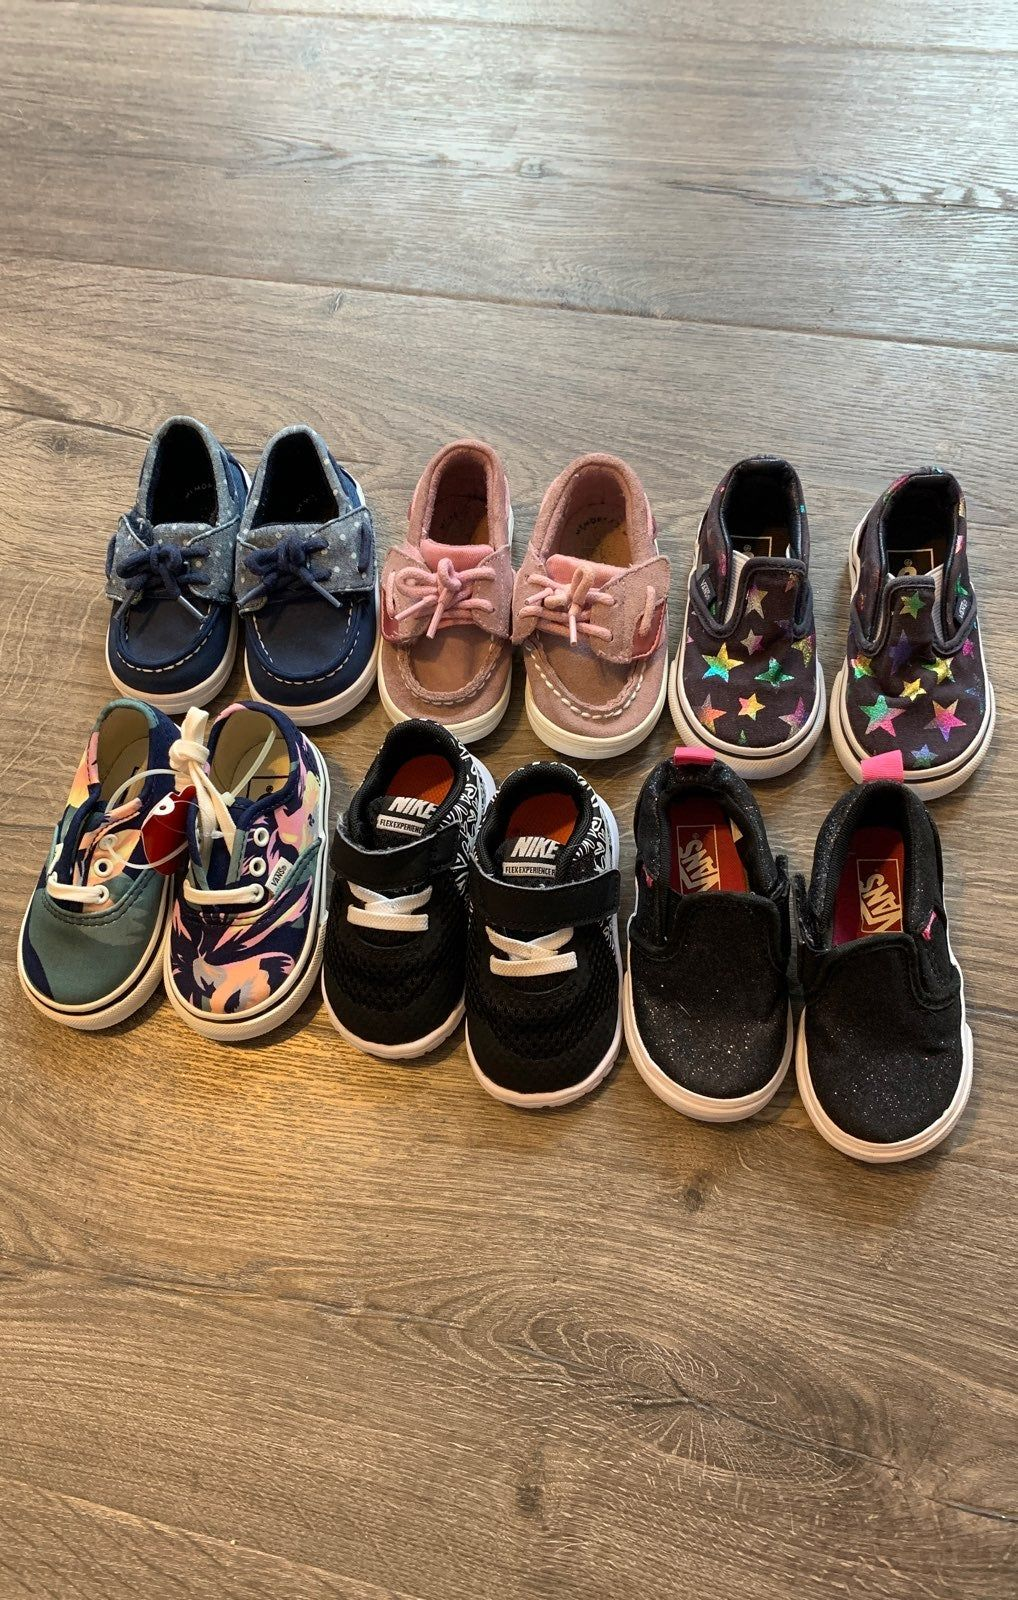 1 pair still has tags The rest are in great Condition Size 4 You will get 2 sperrys 2 vans 1 Nike